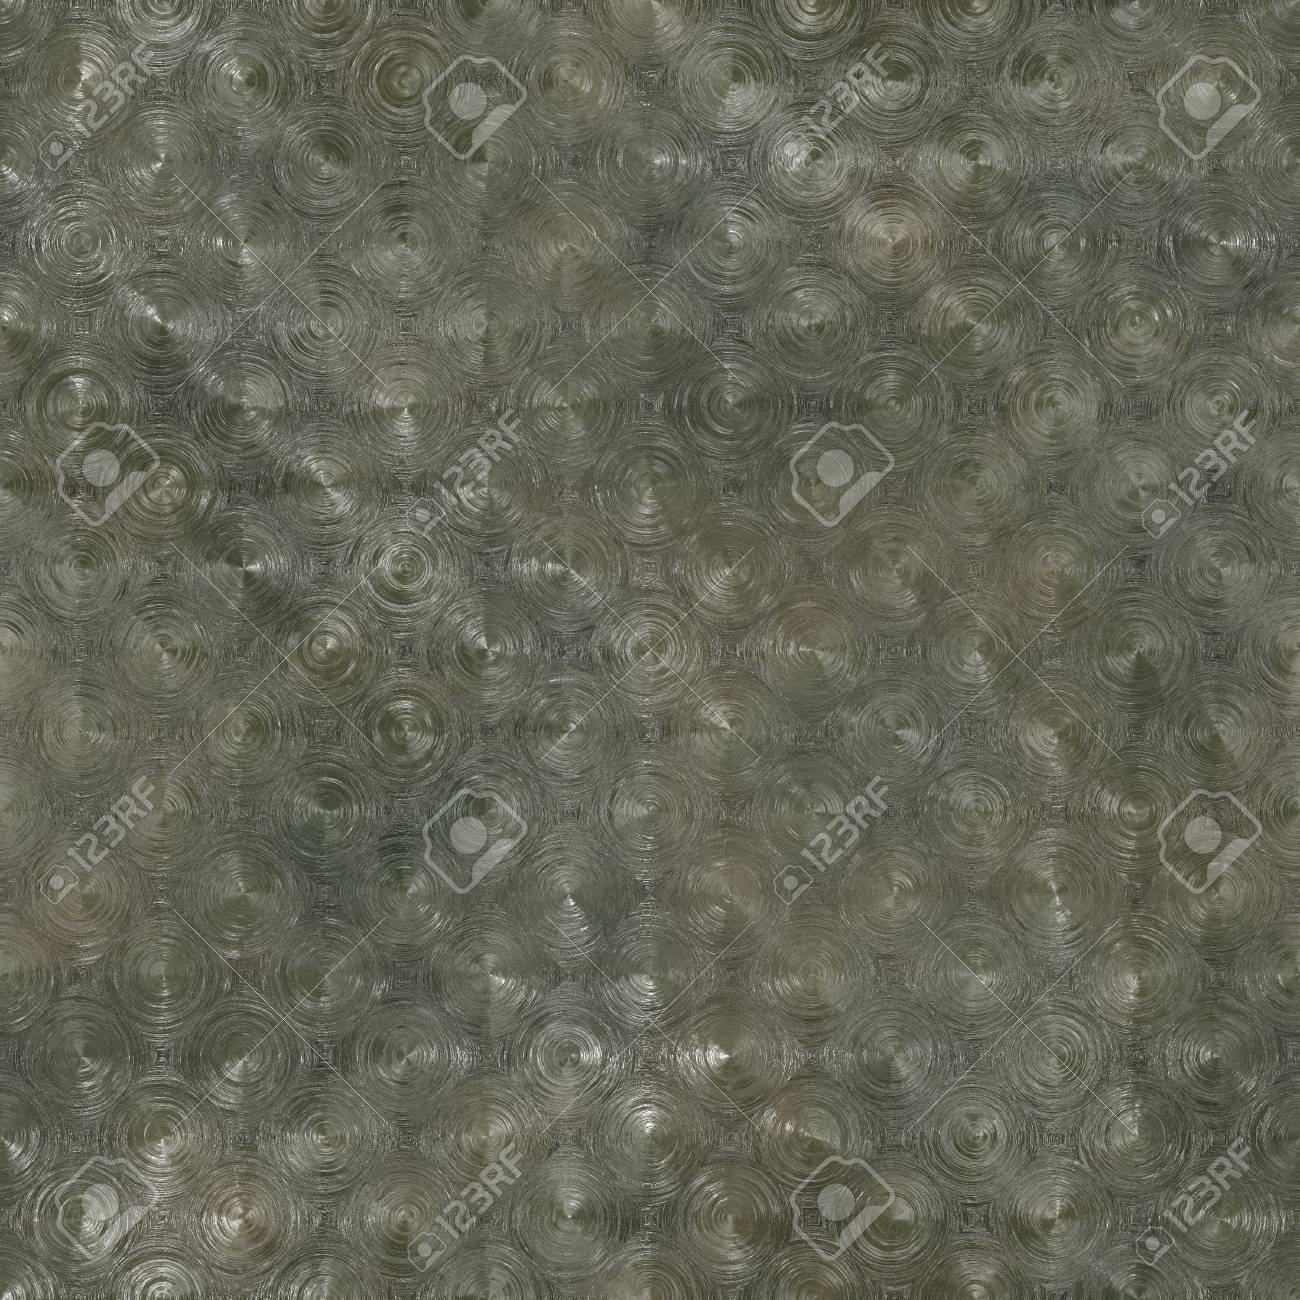 Seamless Pressed Metal Texture Background as Art Stock Photo - 6742994